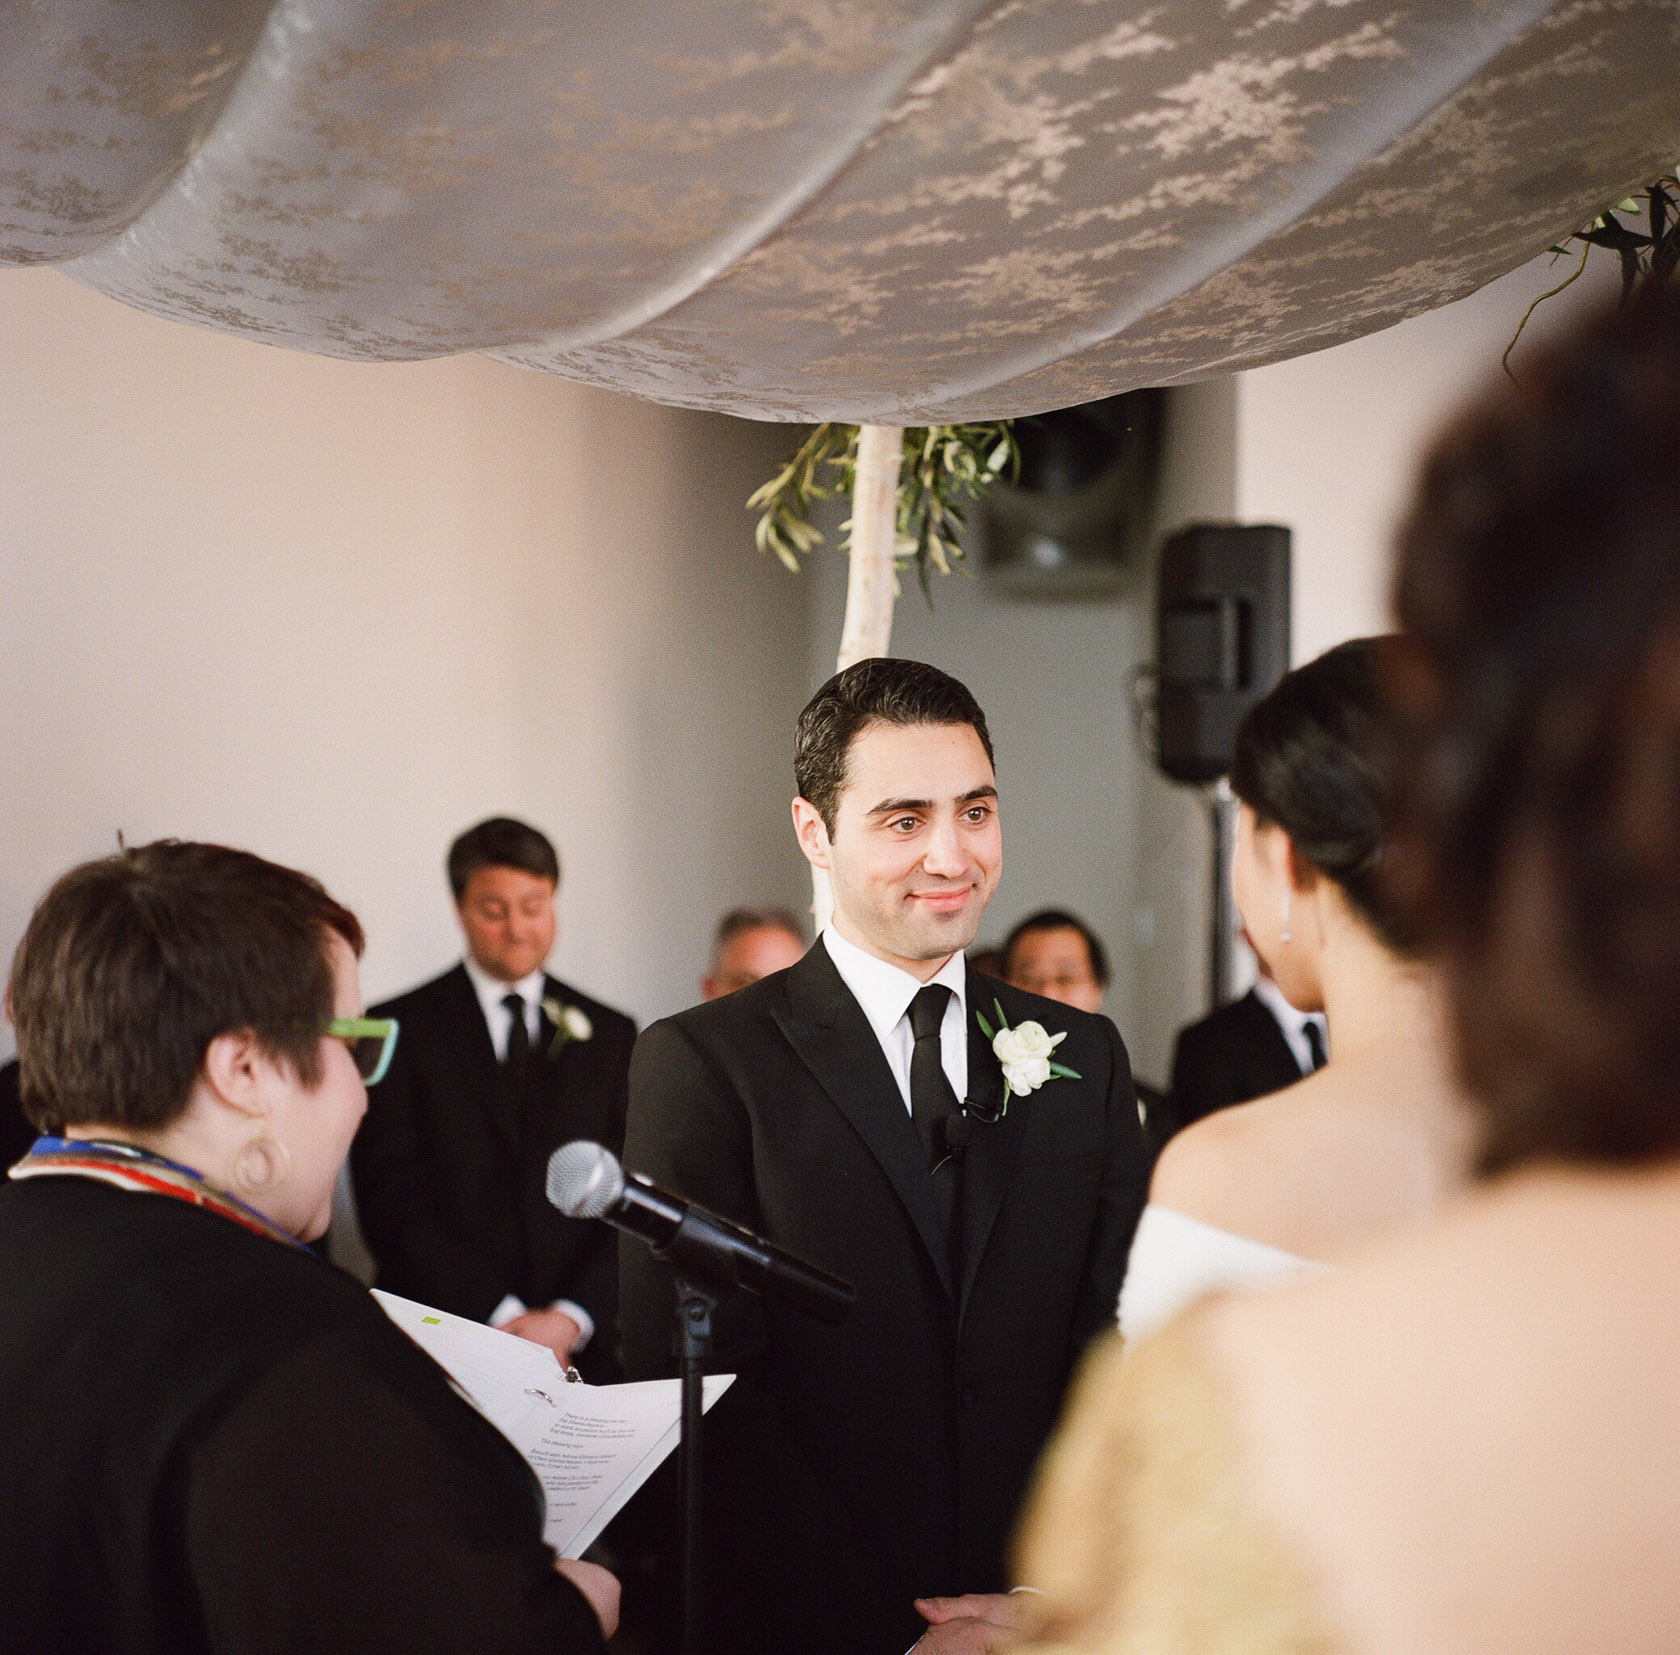 new orleans wedding ceremony on film at cac - 05